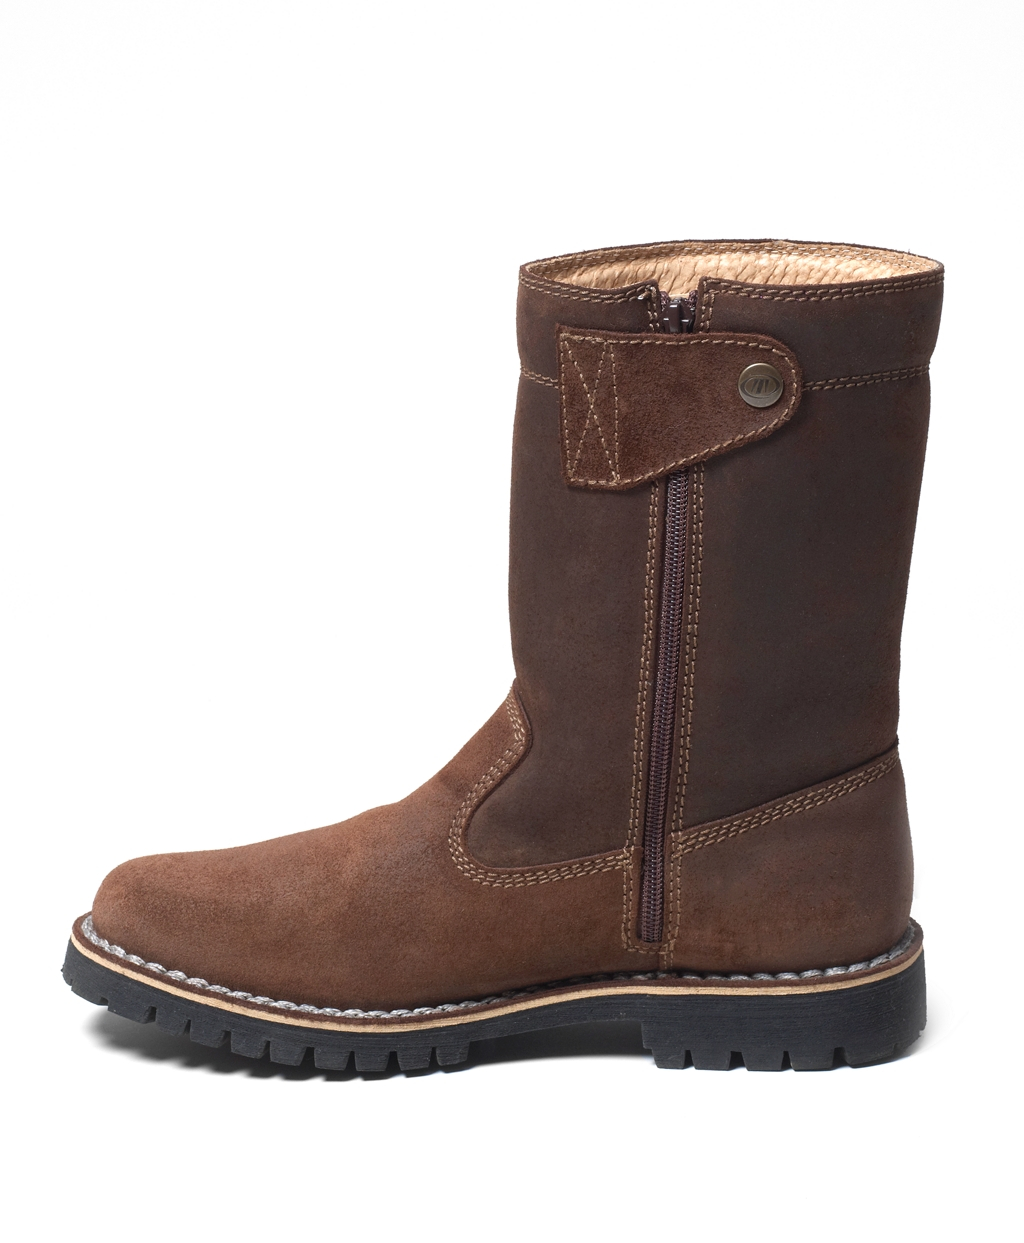 Brooks Brothers Tecnica Montana Boots In Brown For Men Lyst